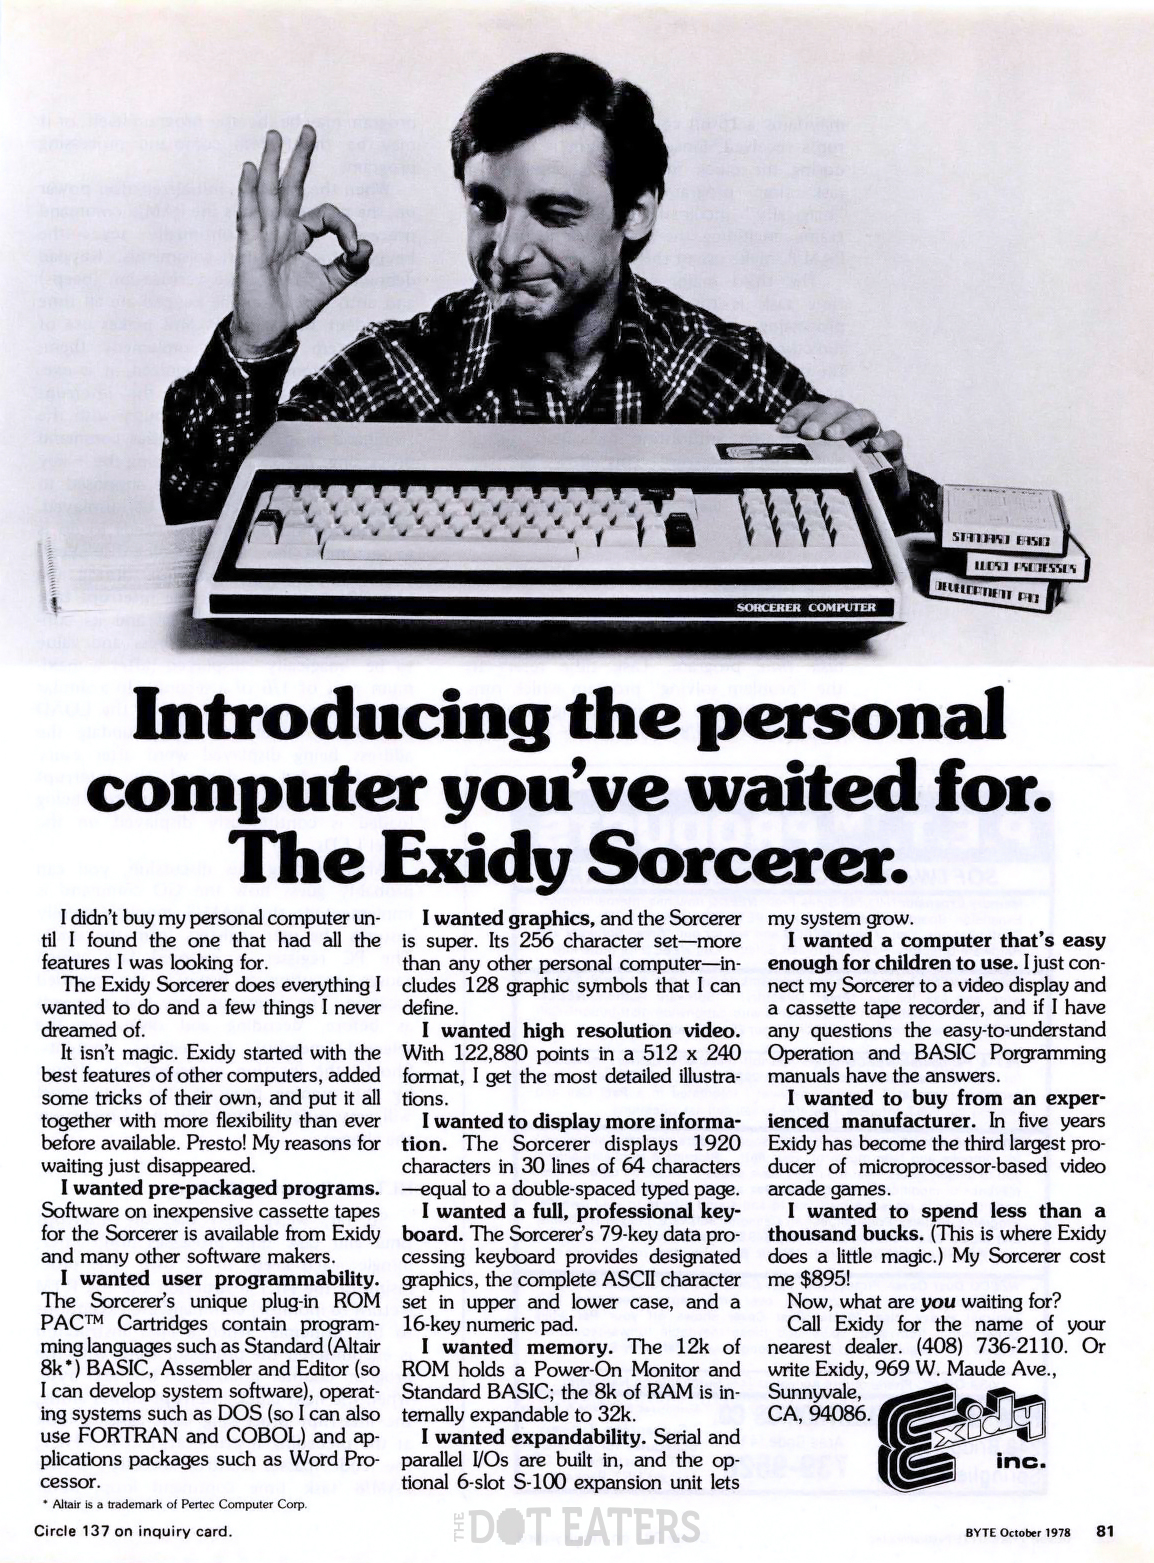 Ad for the Sorcerer, a personal computer by arcade video game maker Exidy, 1978